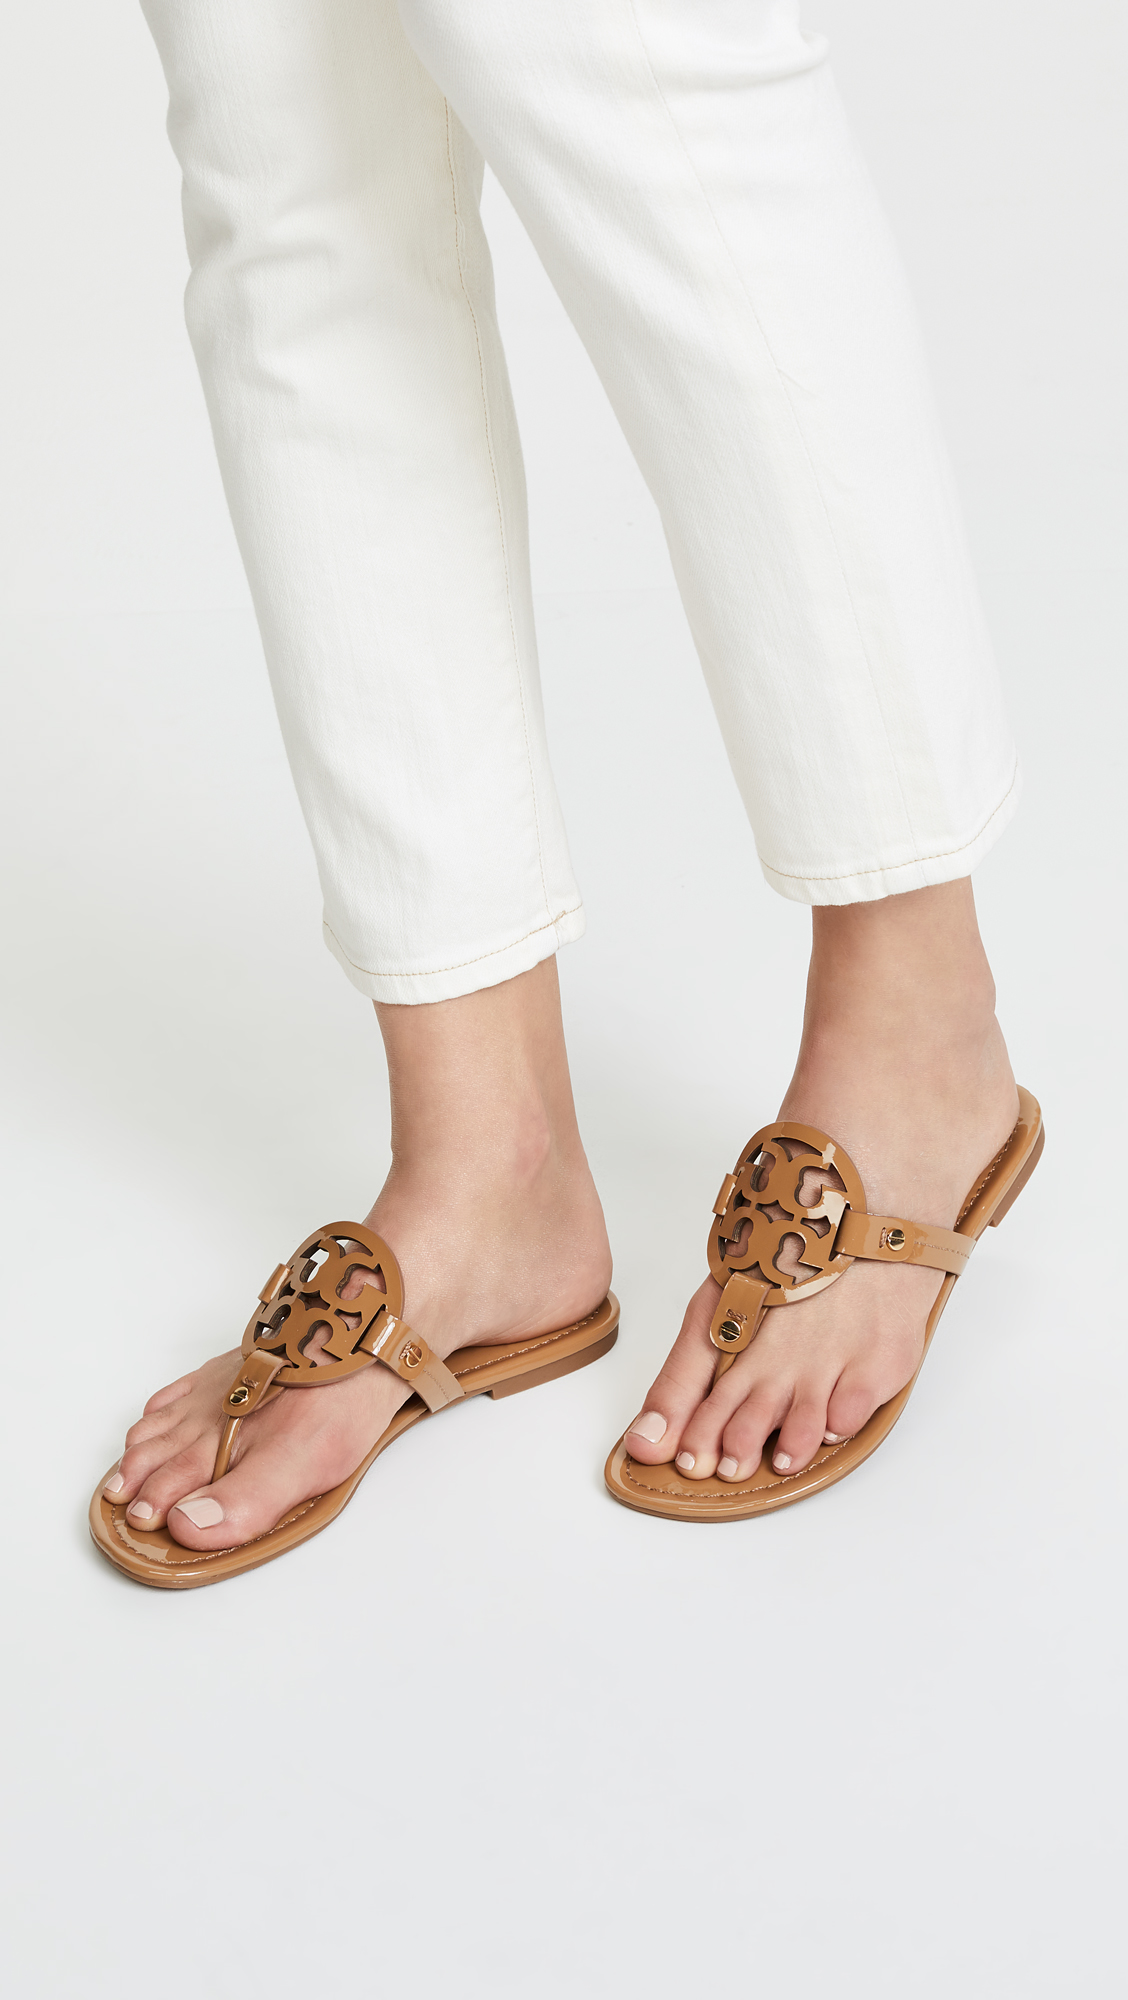 c30278dae3b6 Tory Burch Miller Thong Sandals